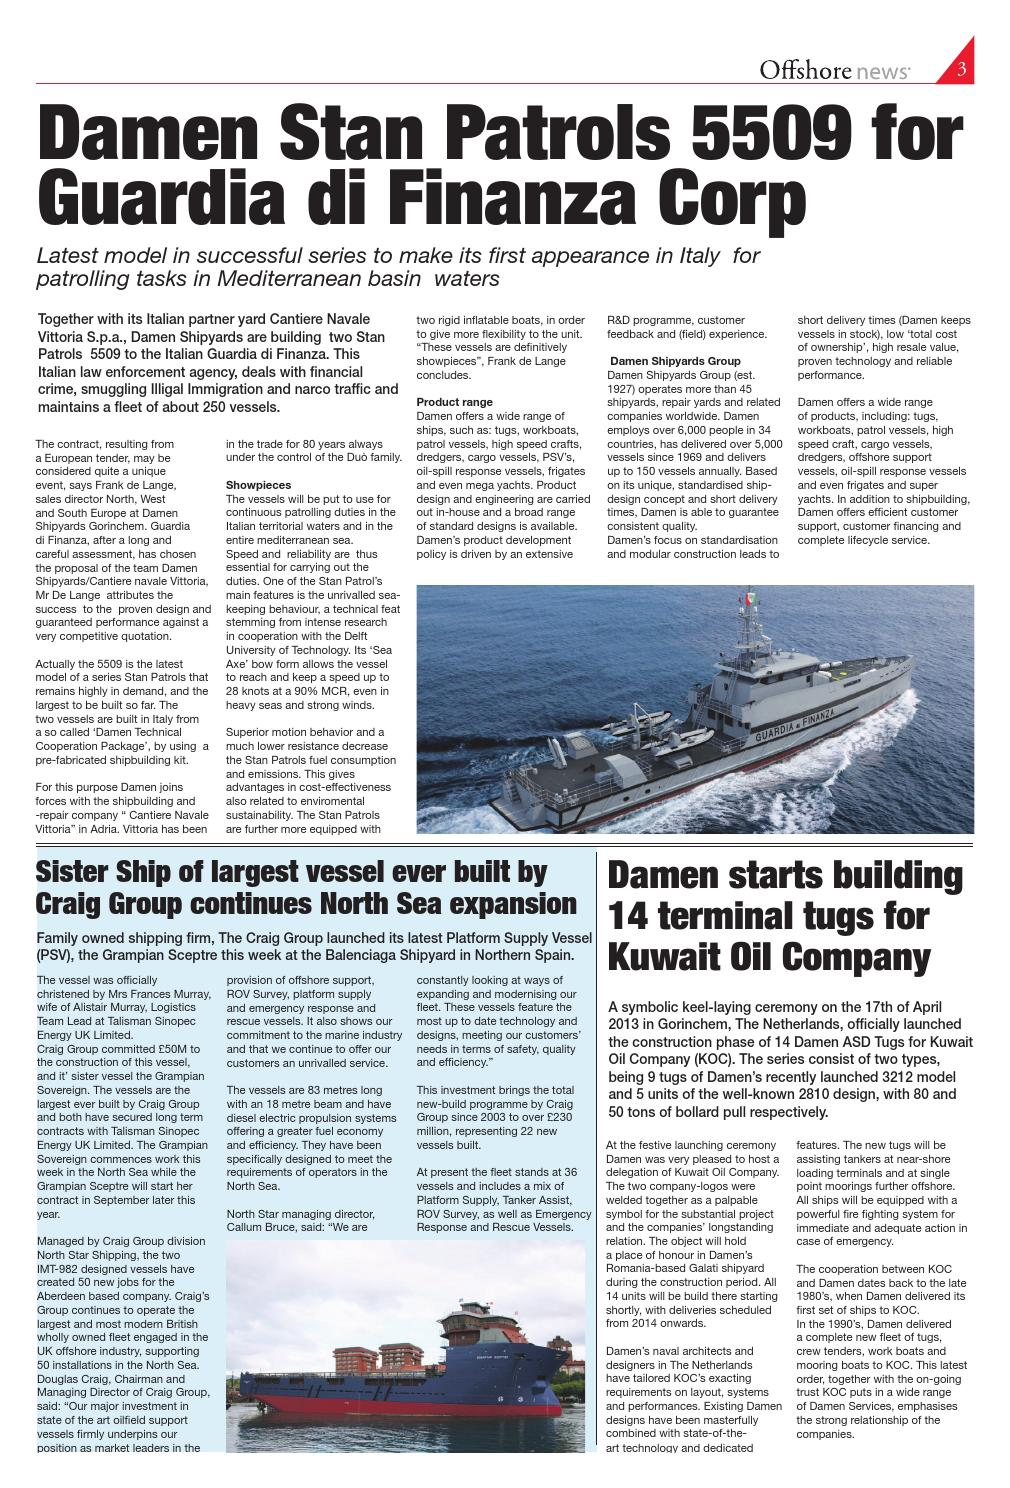 Offshore News edition 49 by Offshore News - issuu